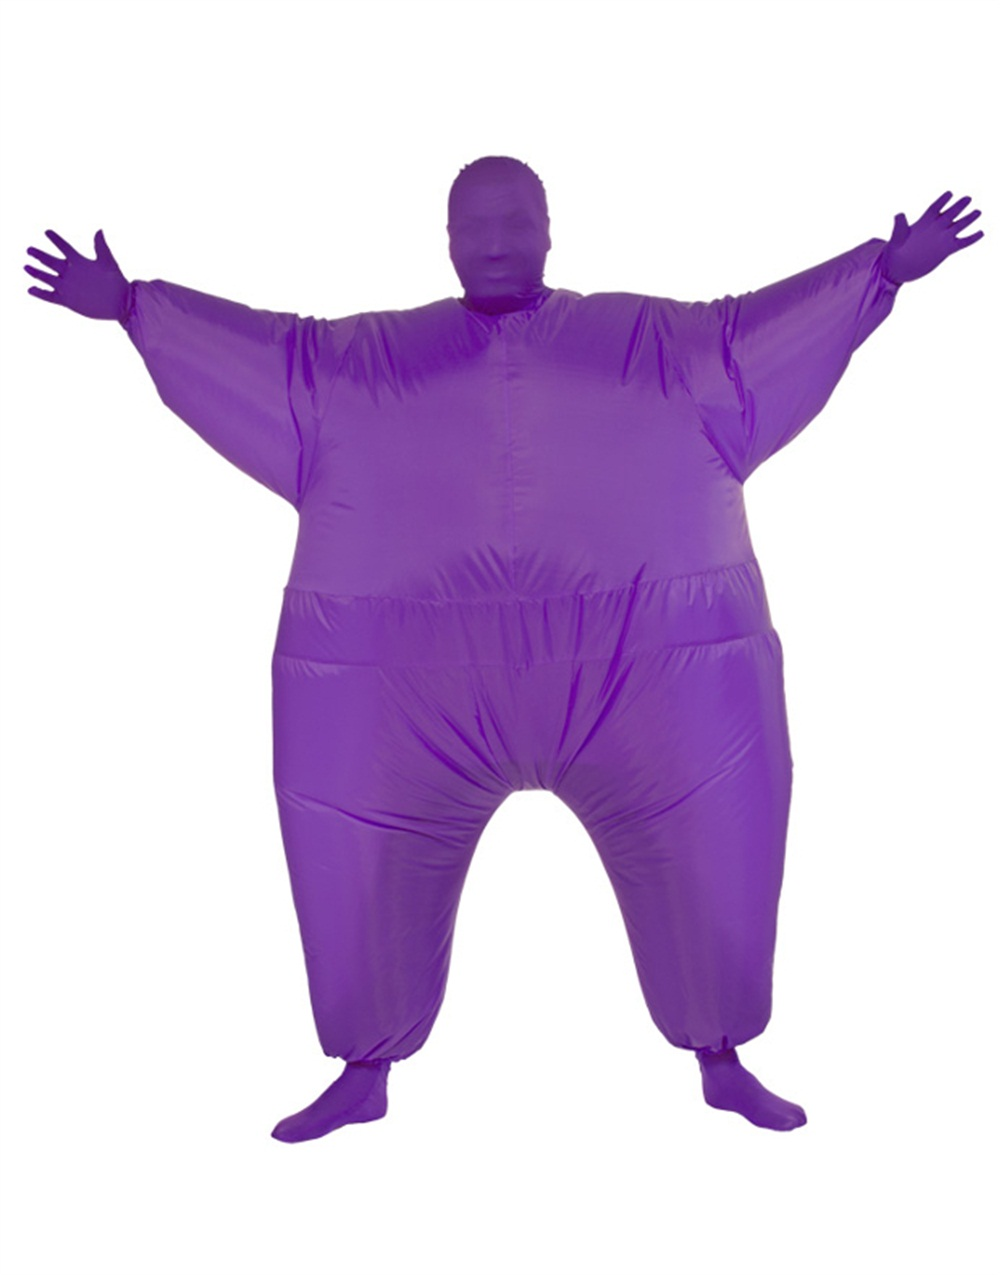 Inflatable Bodysuit Adult Halloween Costume - Walmart.com